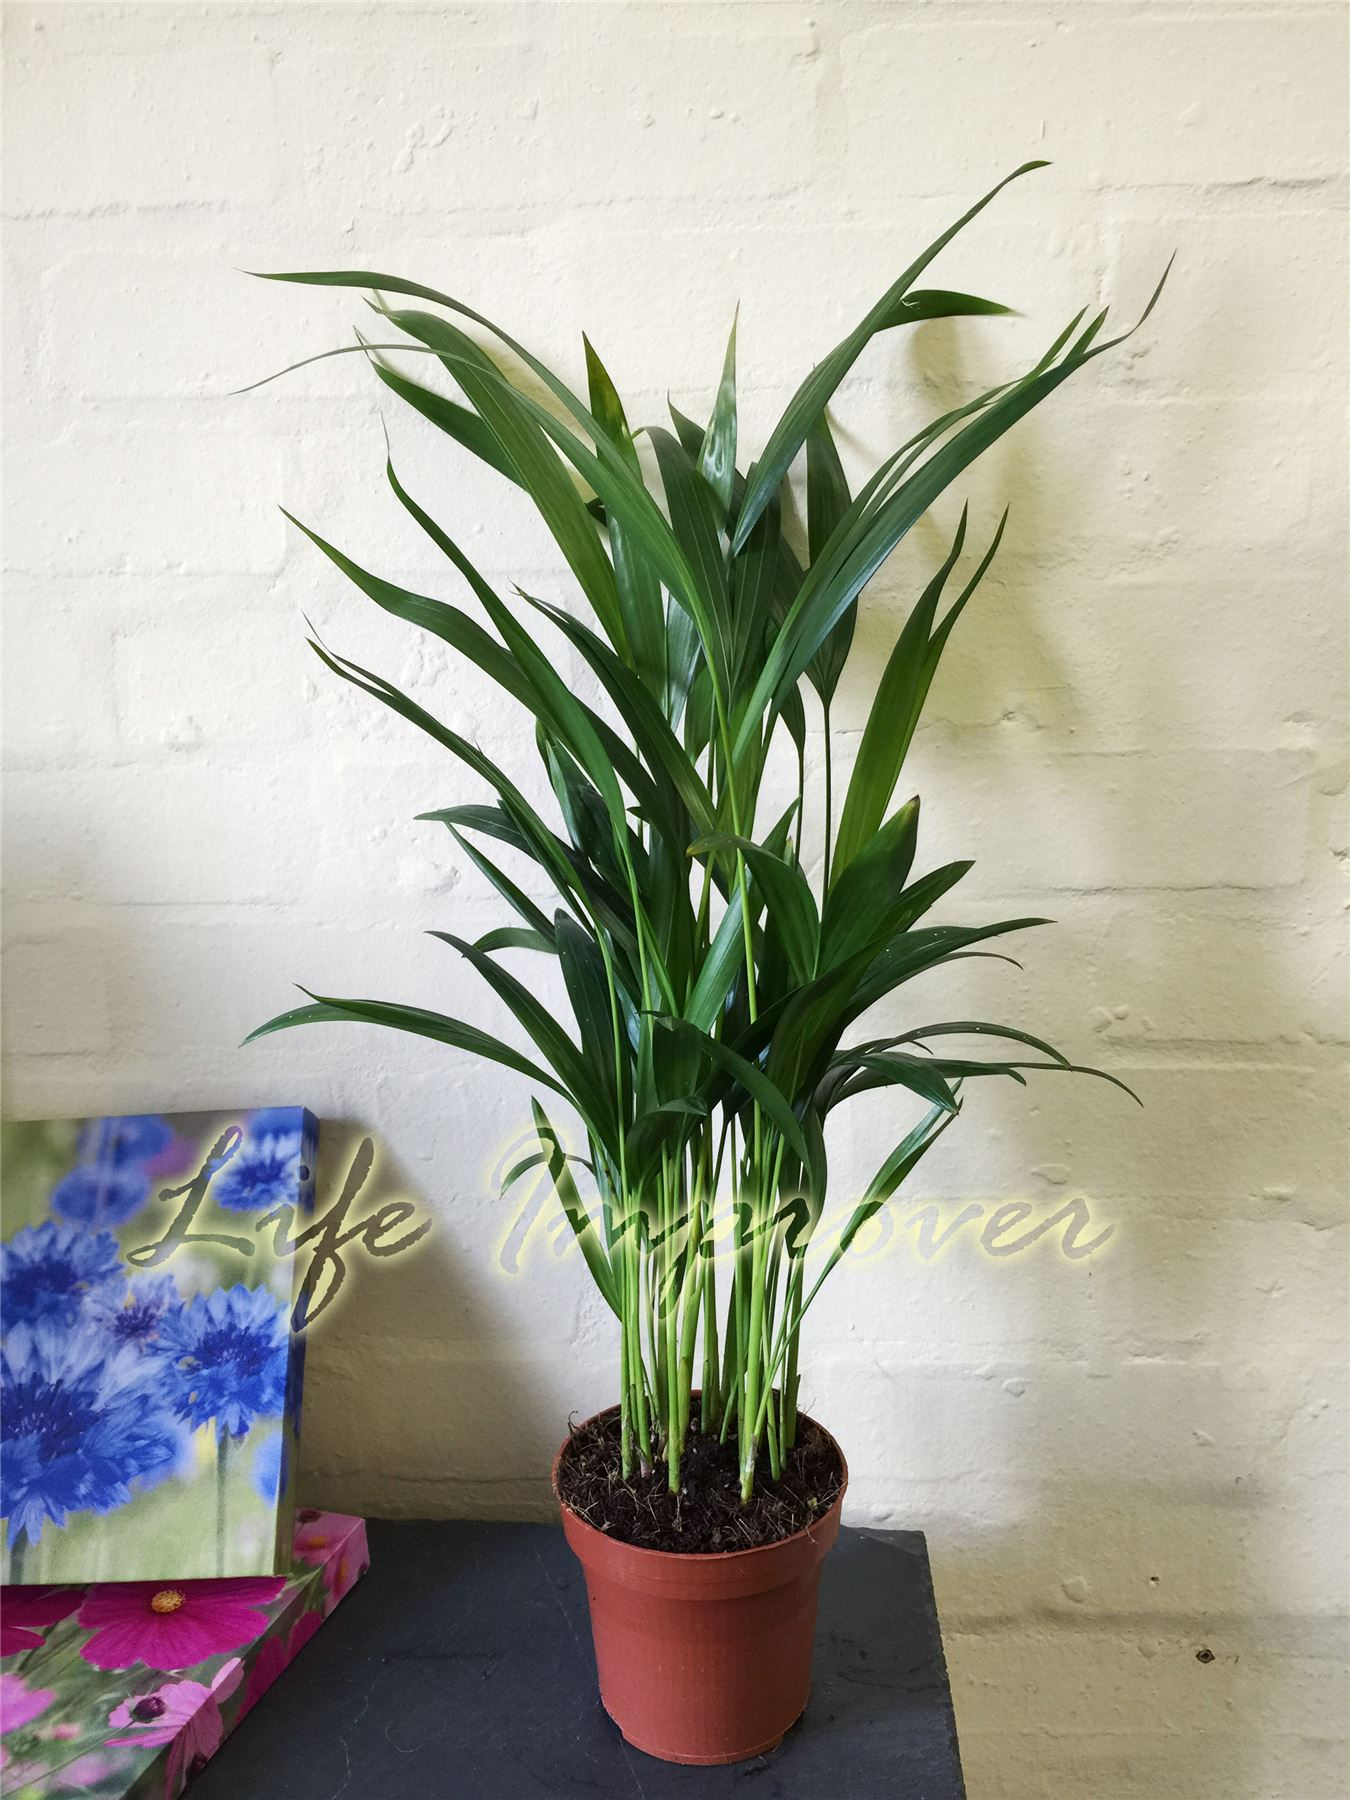 1 areca palm plant in pot canna palm giardino interno for Pictures of areca palm plants